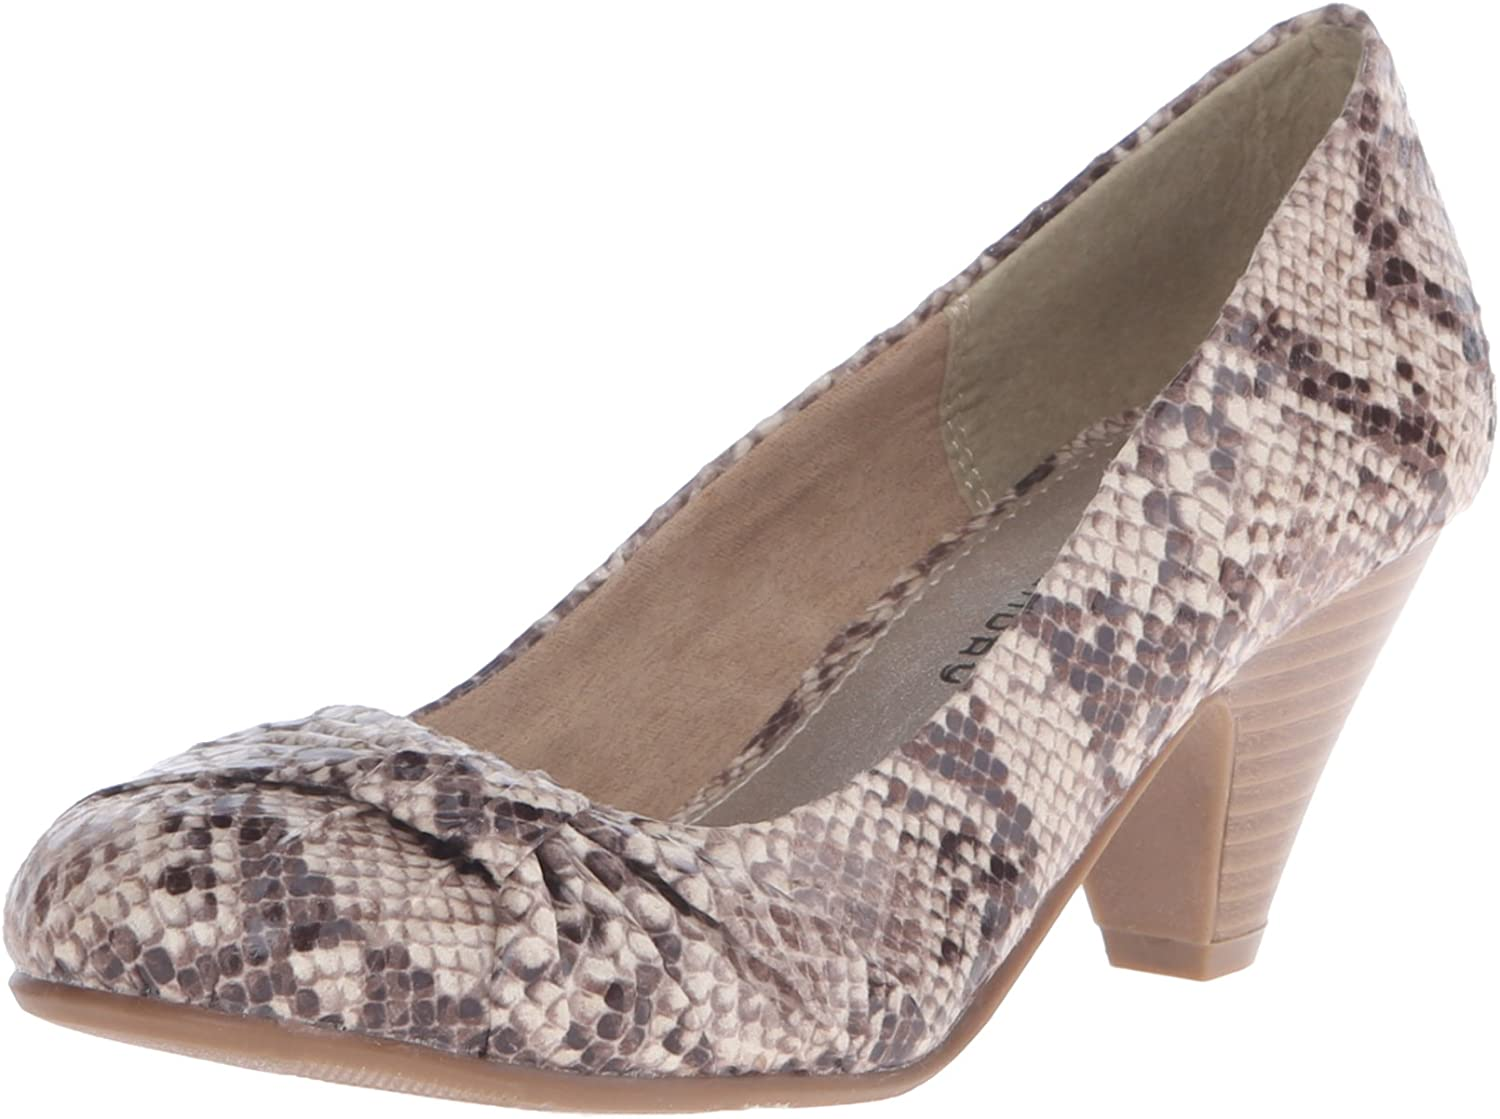 CL by Chinese Laundry Women's Sonnet Vitello Pump